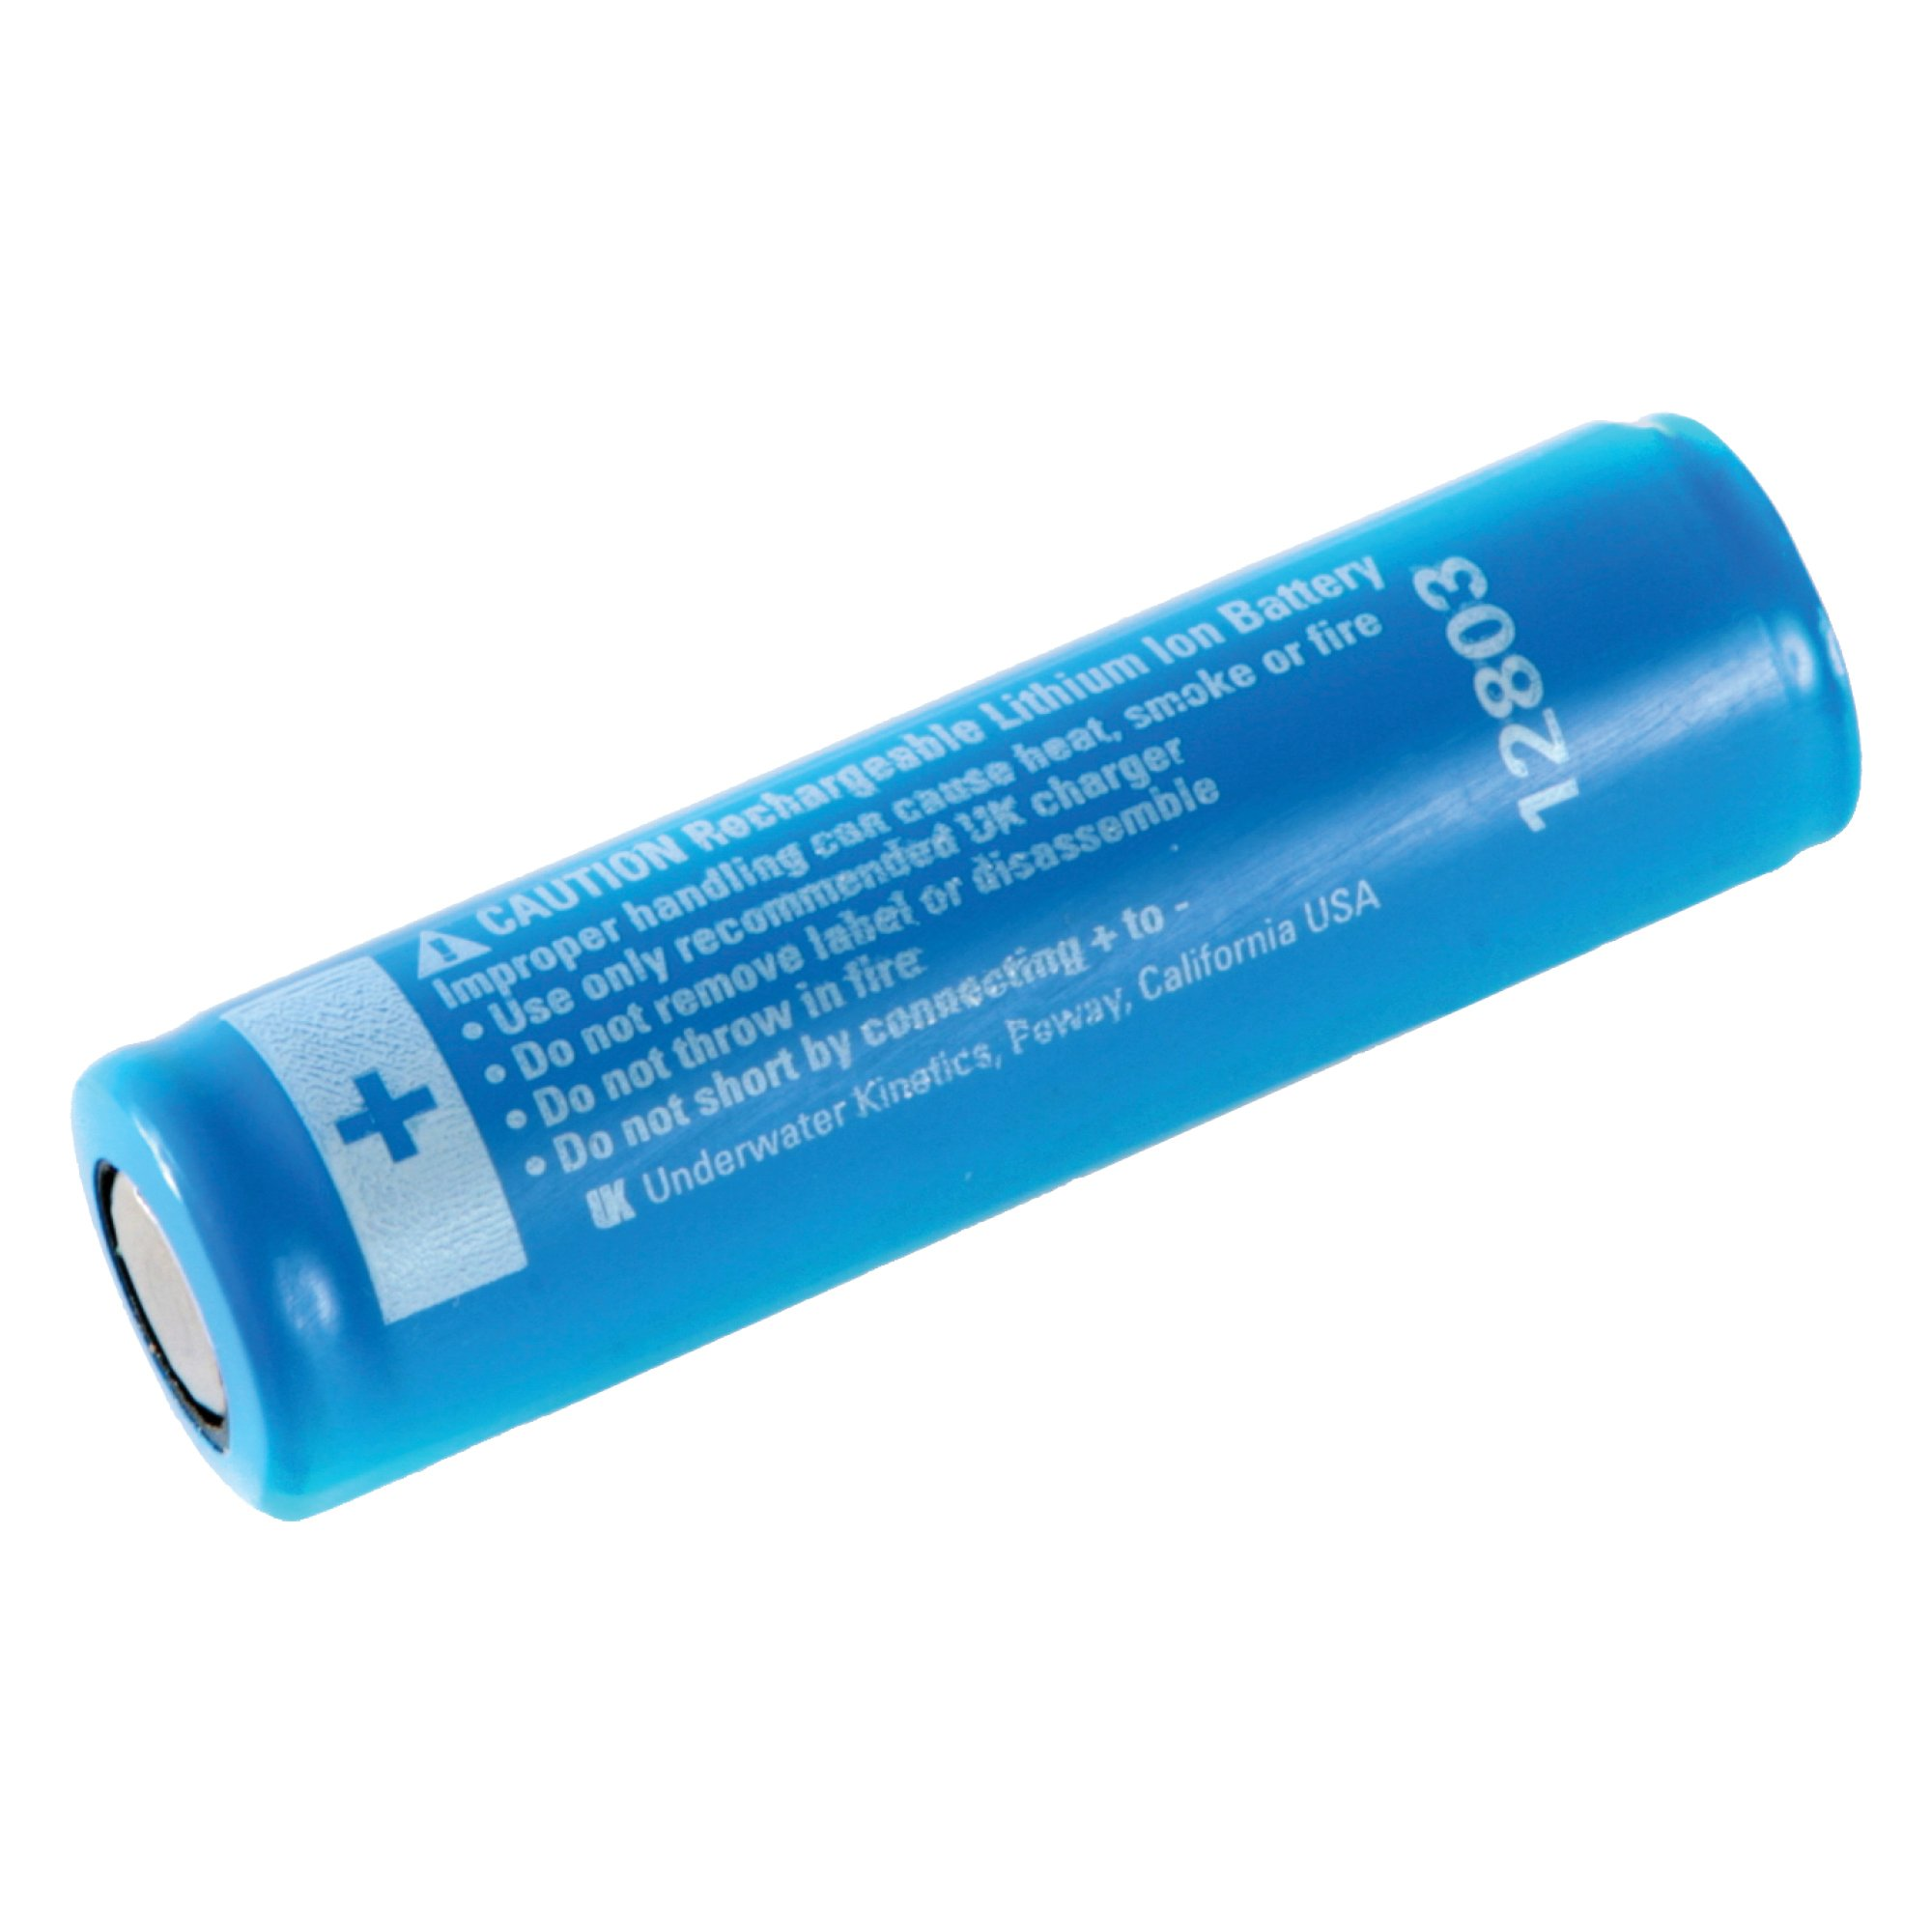 Underwater Kinetics Lithium Ion Battery, Aqualite by Underwater Kinetics